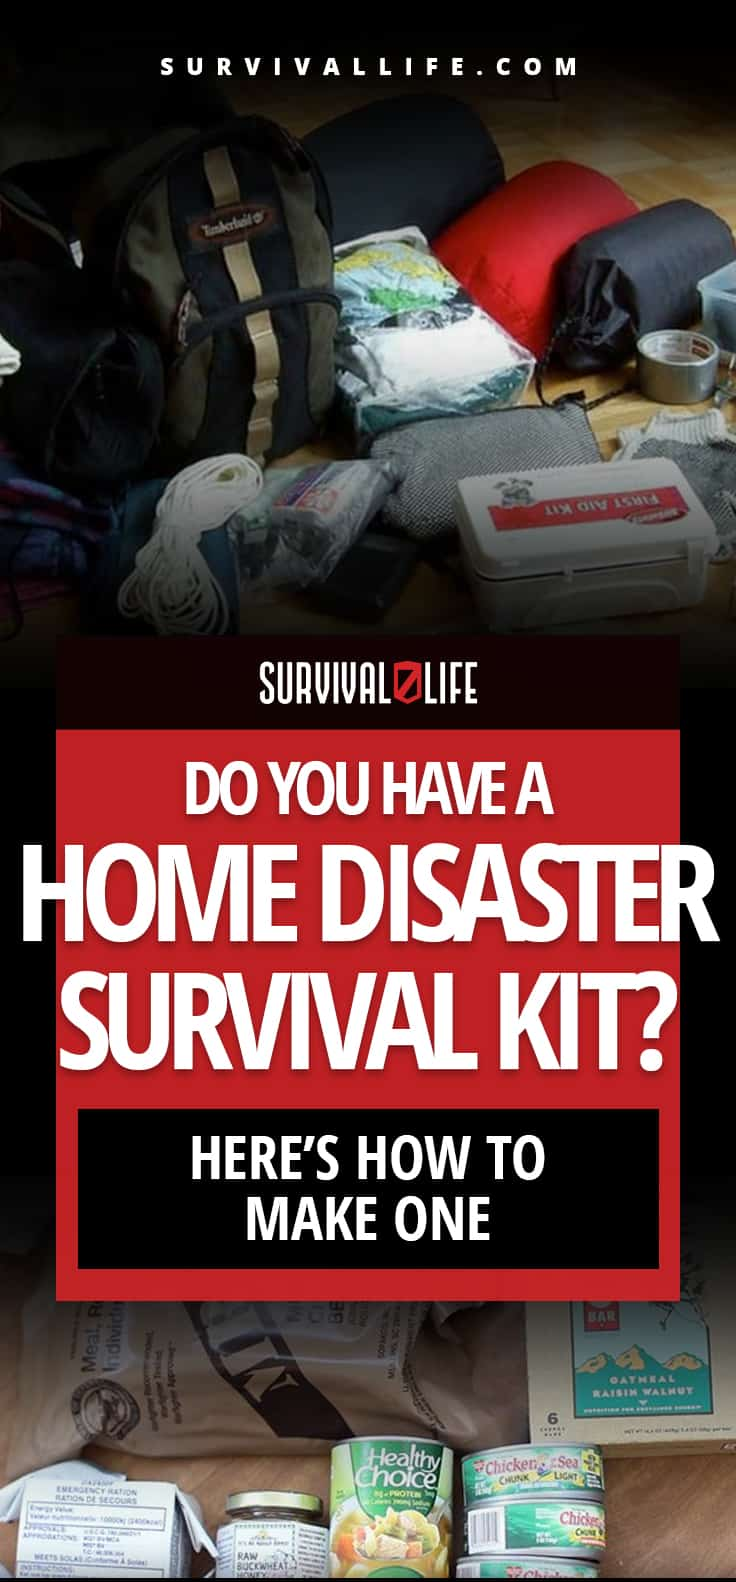 Do You Have A Home Disaster Survival Kit? Here's How To Make One